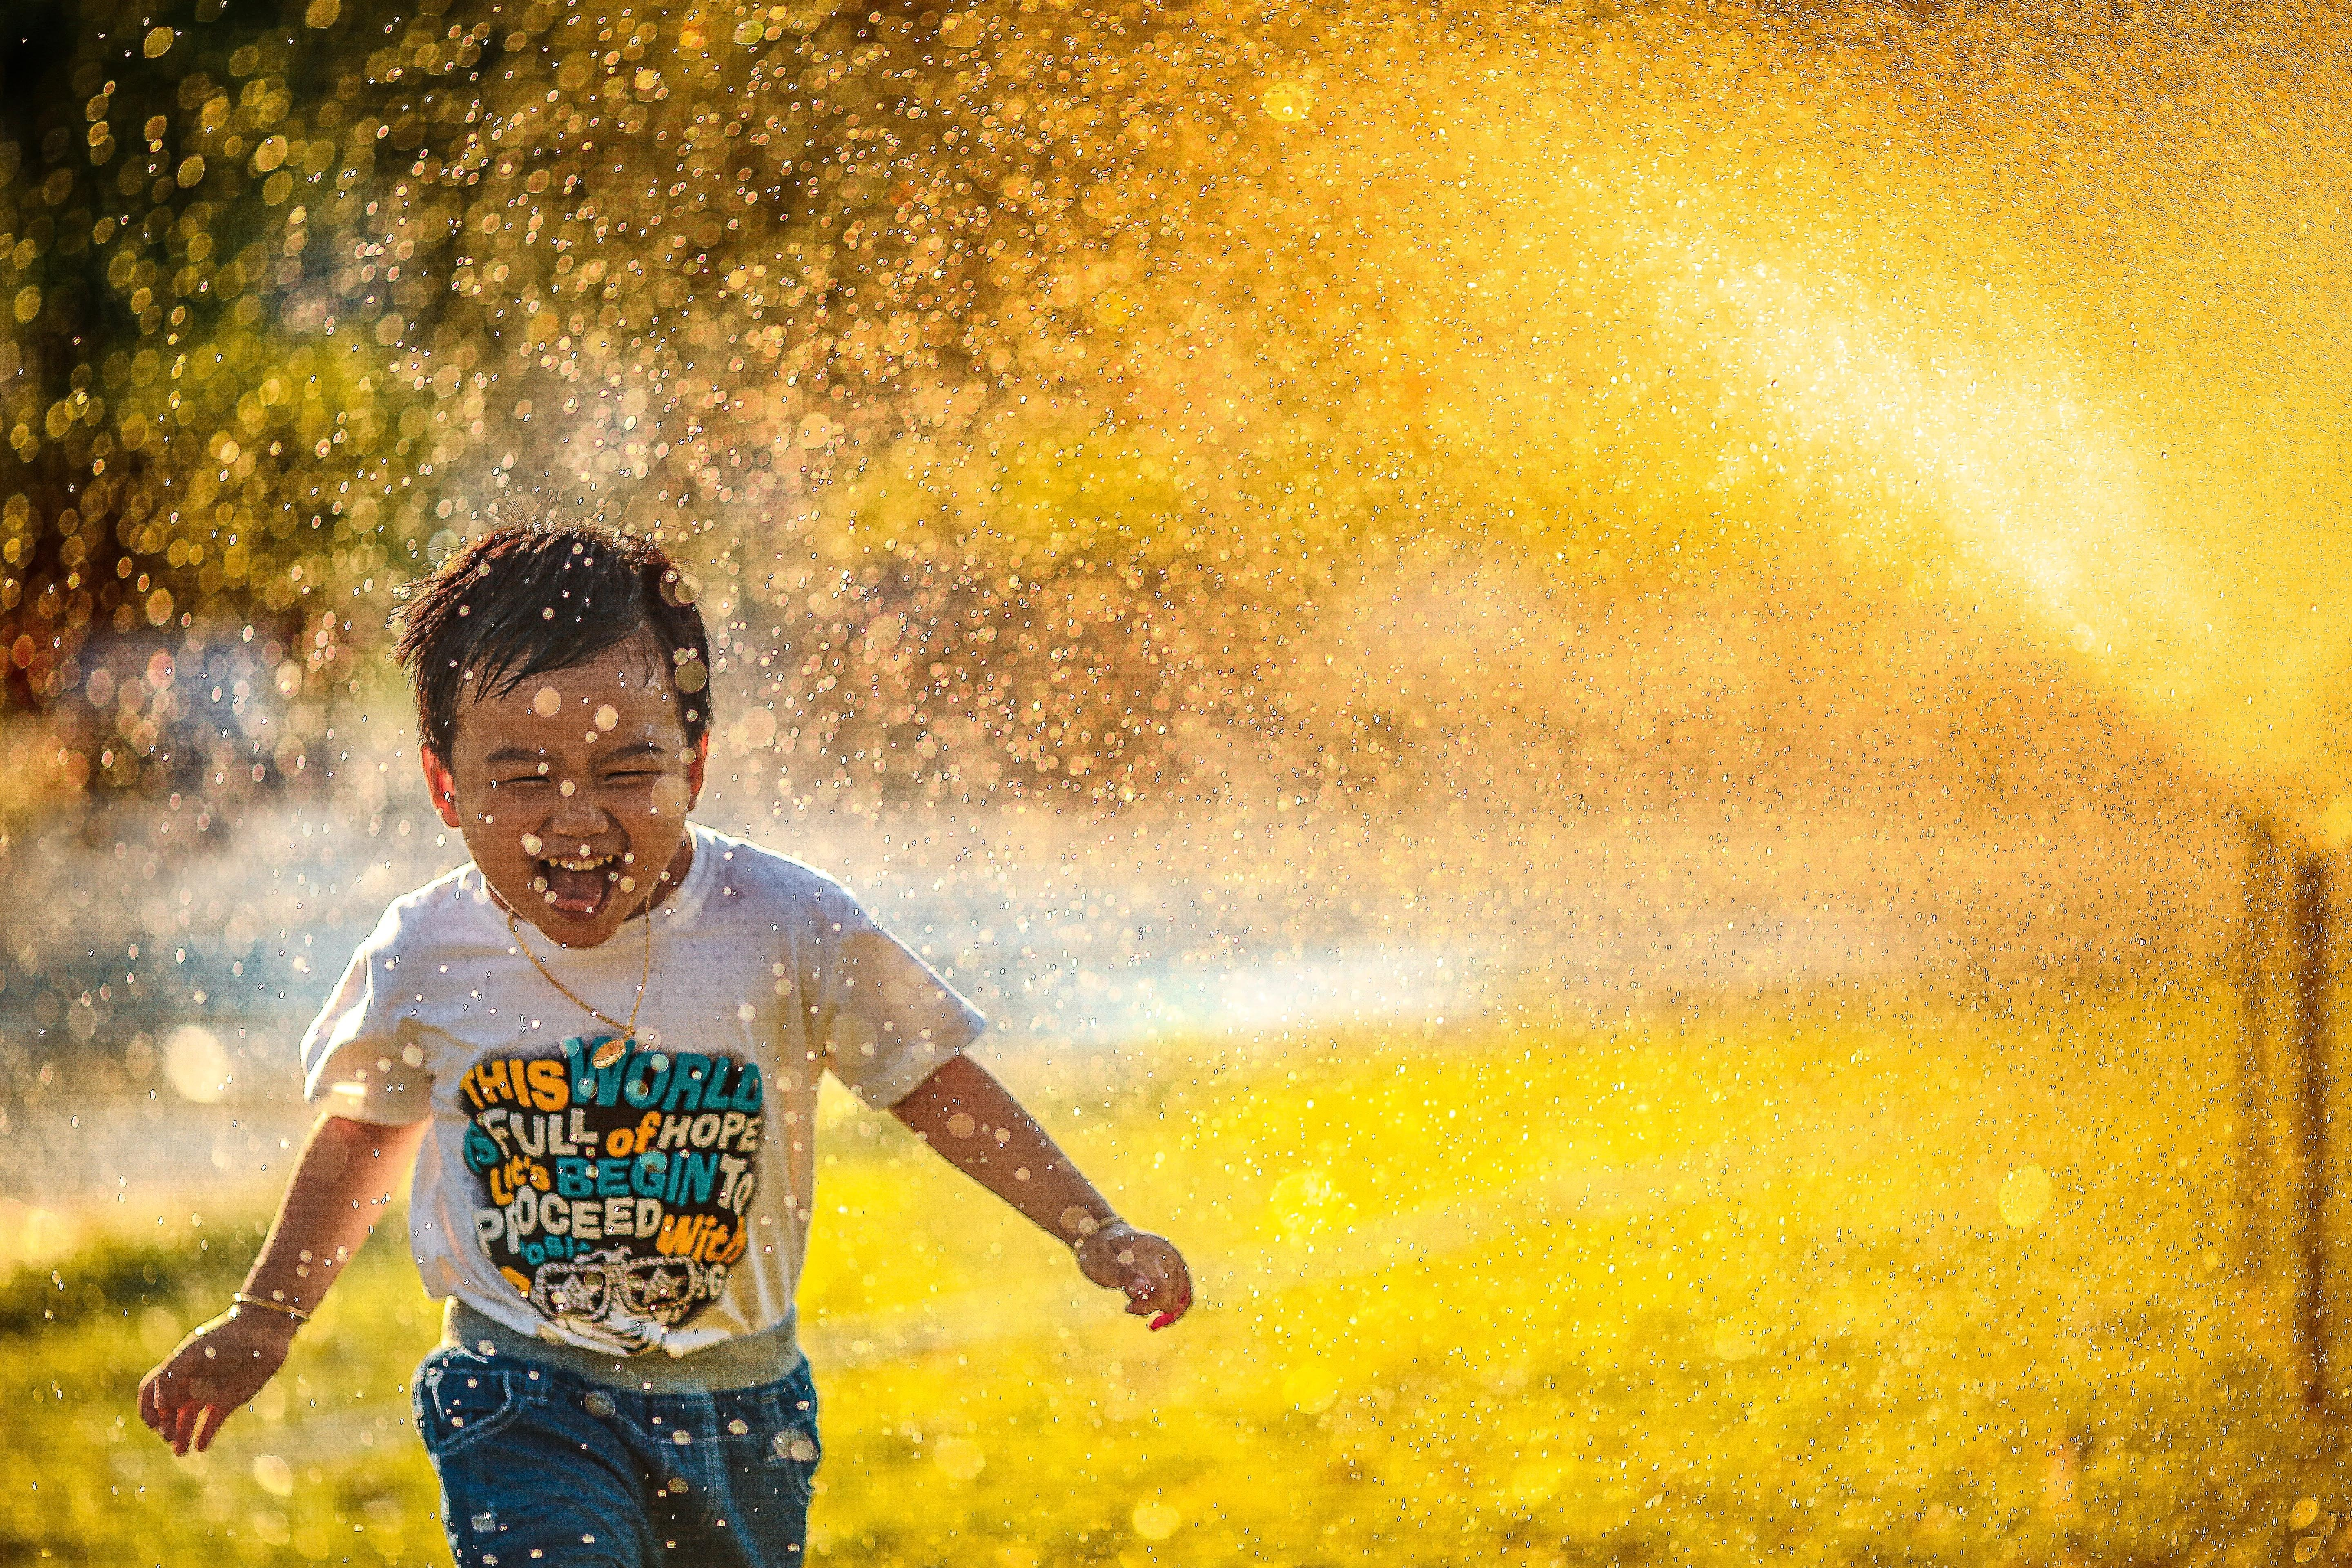 A child playing with the sprinklers | Source: Unsplash.com